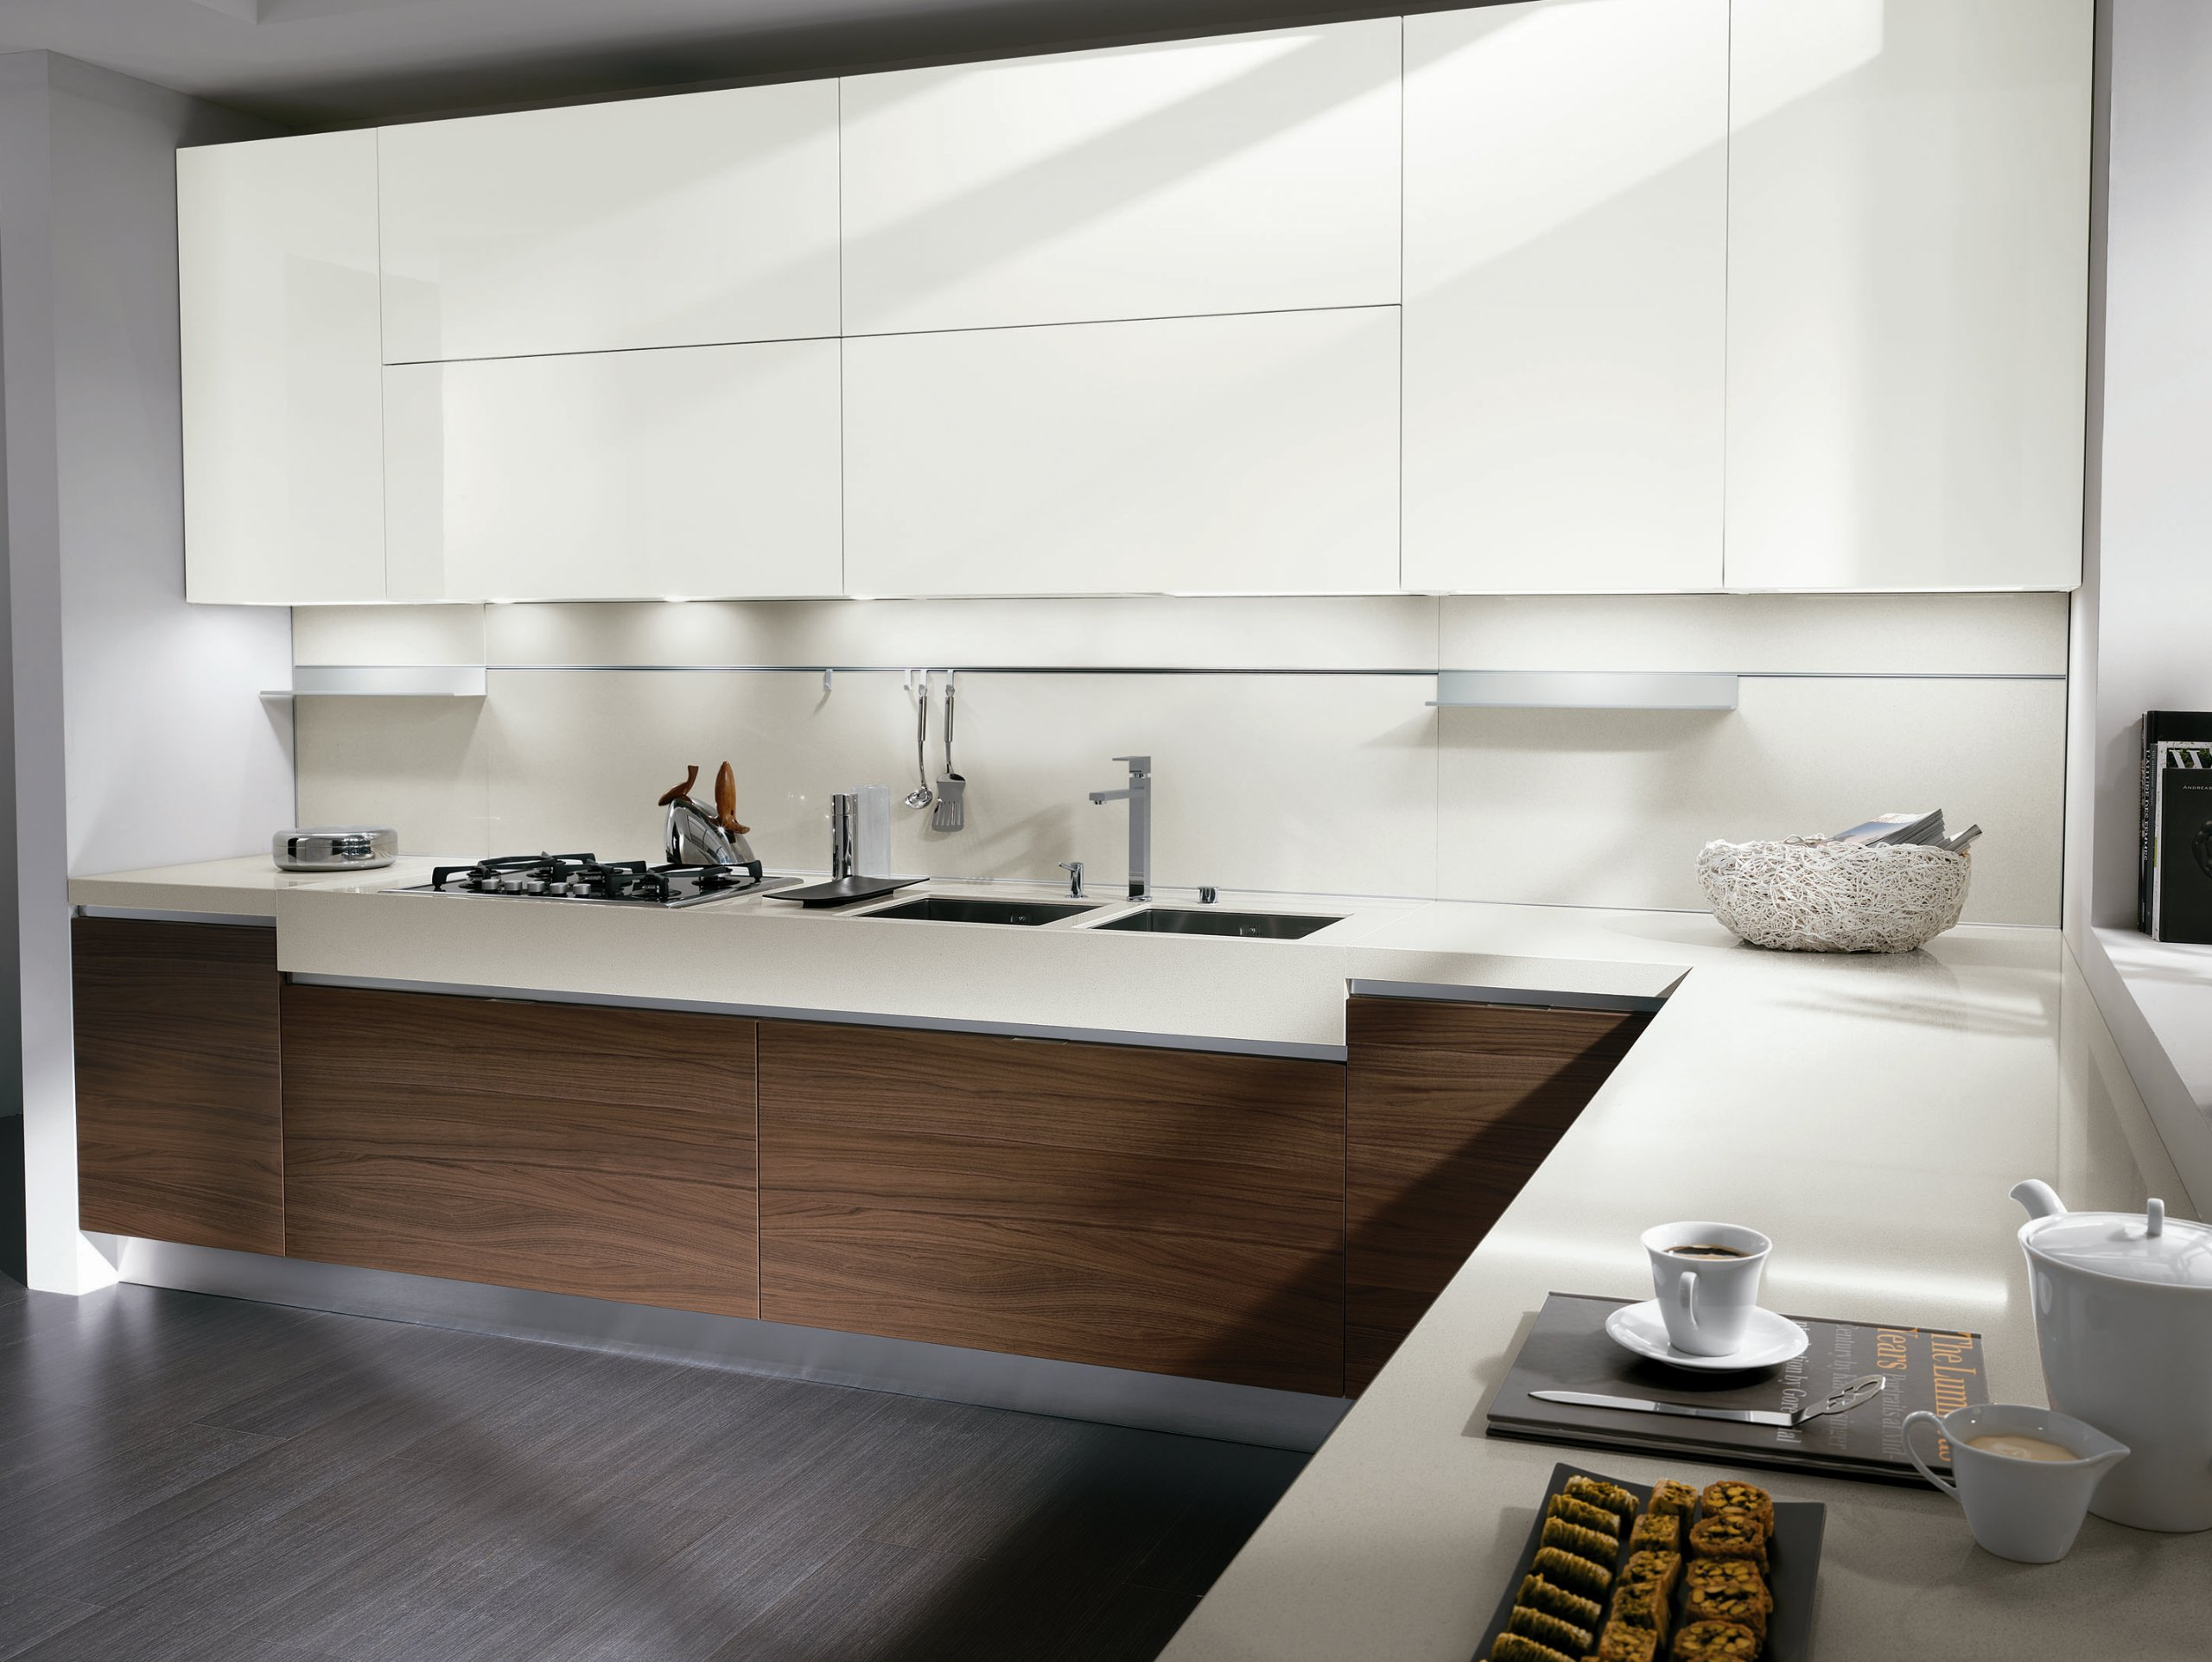 Walnut kitchen elektra new classic by ernestomeda design - Ernesto mera ...